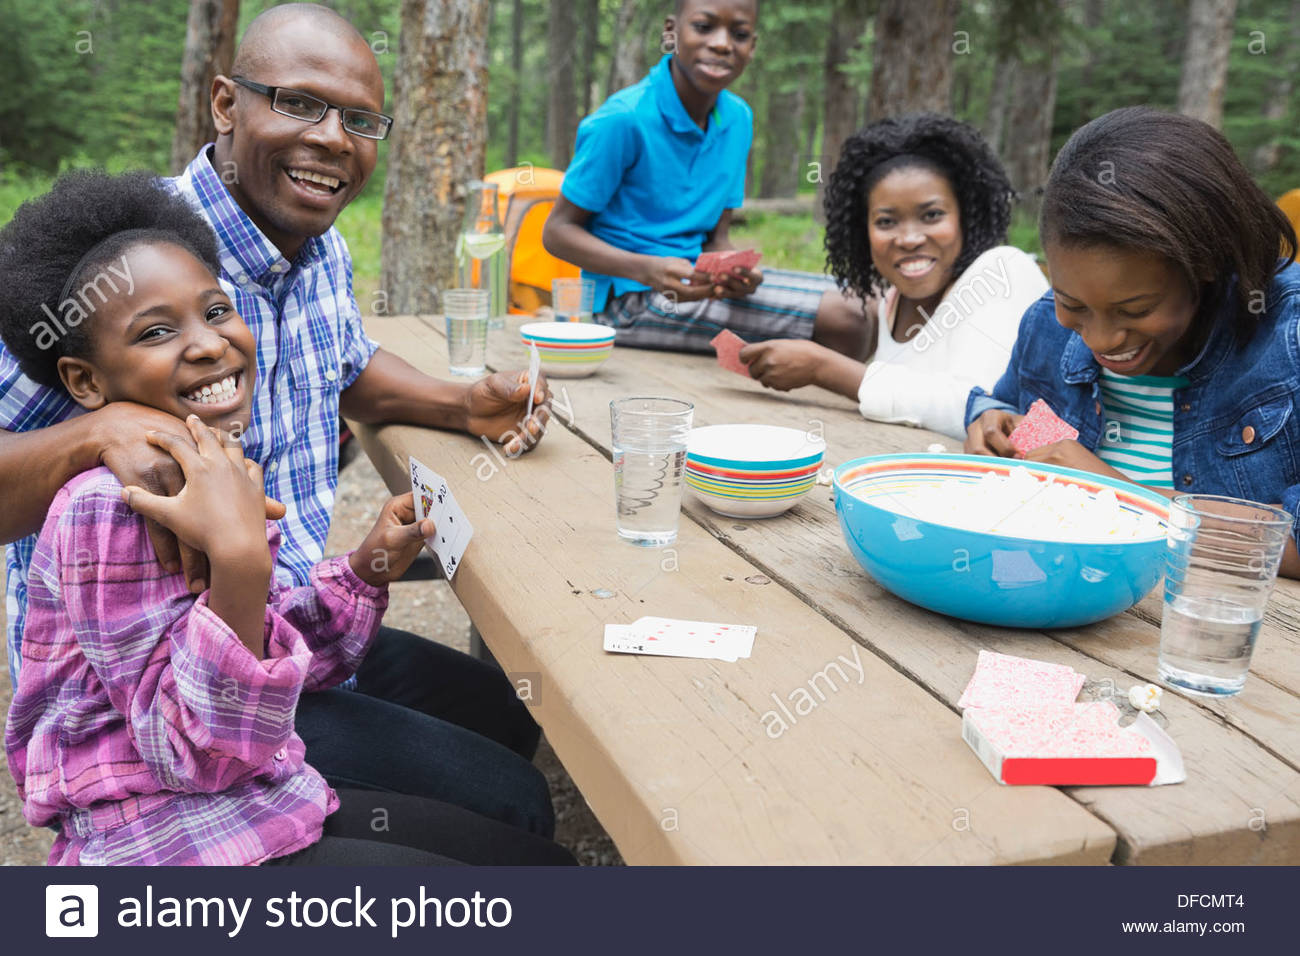 Family of five playing cards at campground - Stock Image